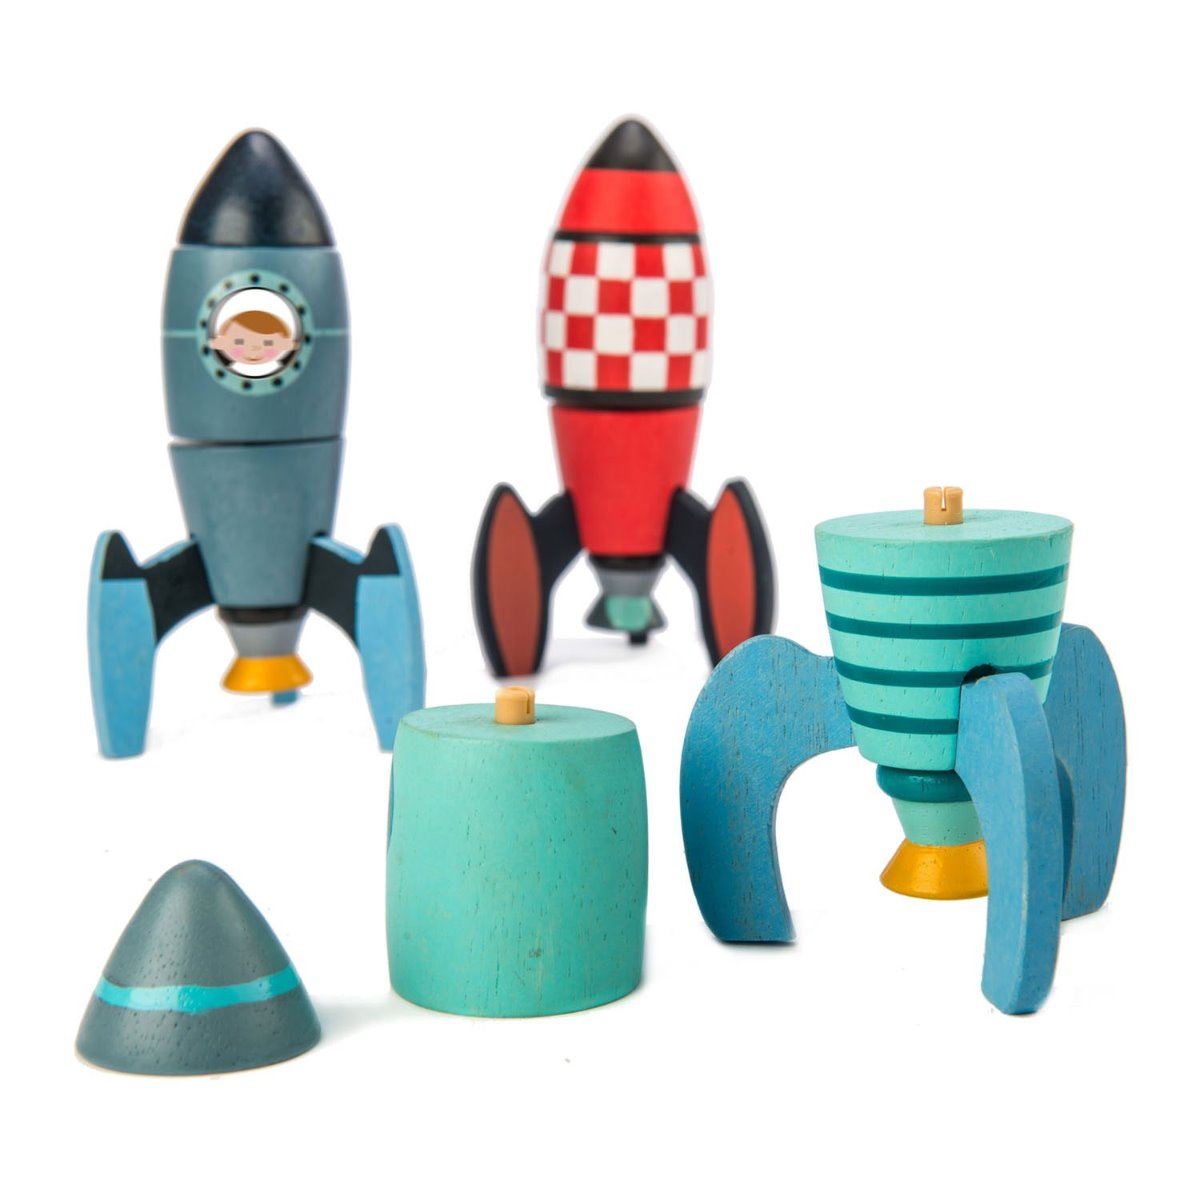 New Tender Leaf Toys Rocket Construction at Little Sprout